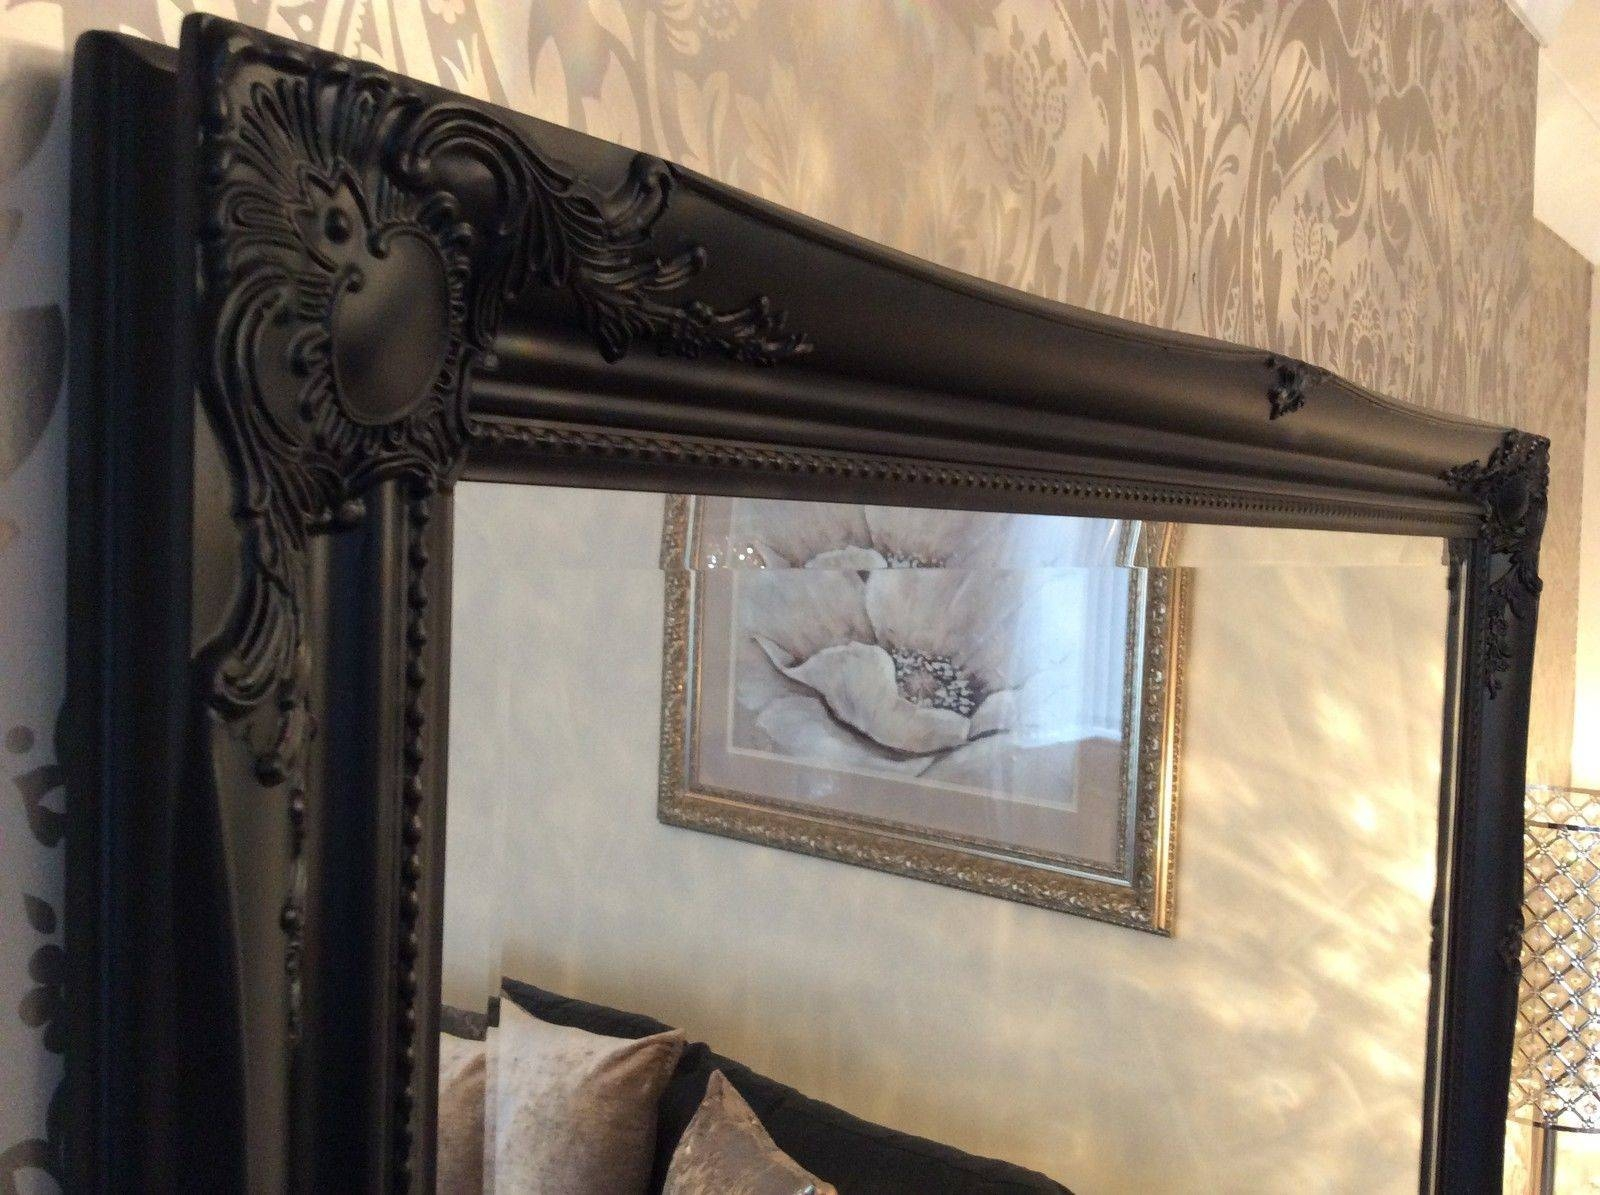 New Black Shabby Chic Ornate Mirror – Choose Your Size – Ready To For Black Mirrors (View 10 of 15)